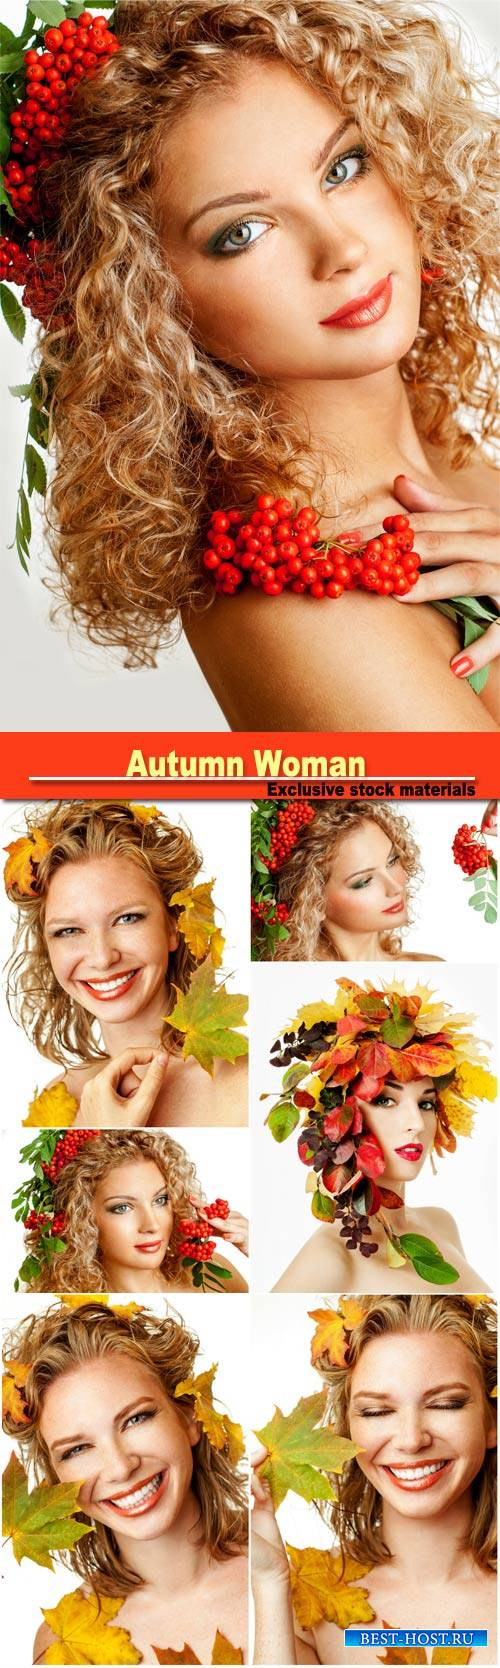 Autumn woman fashion portrait, beautiful model girl with  rowan berries